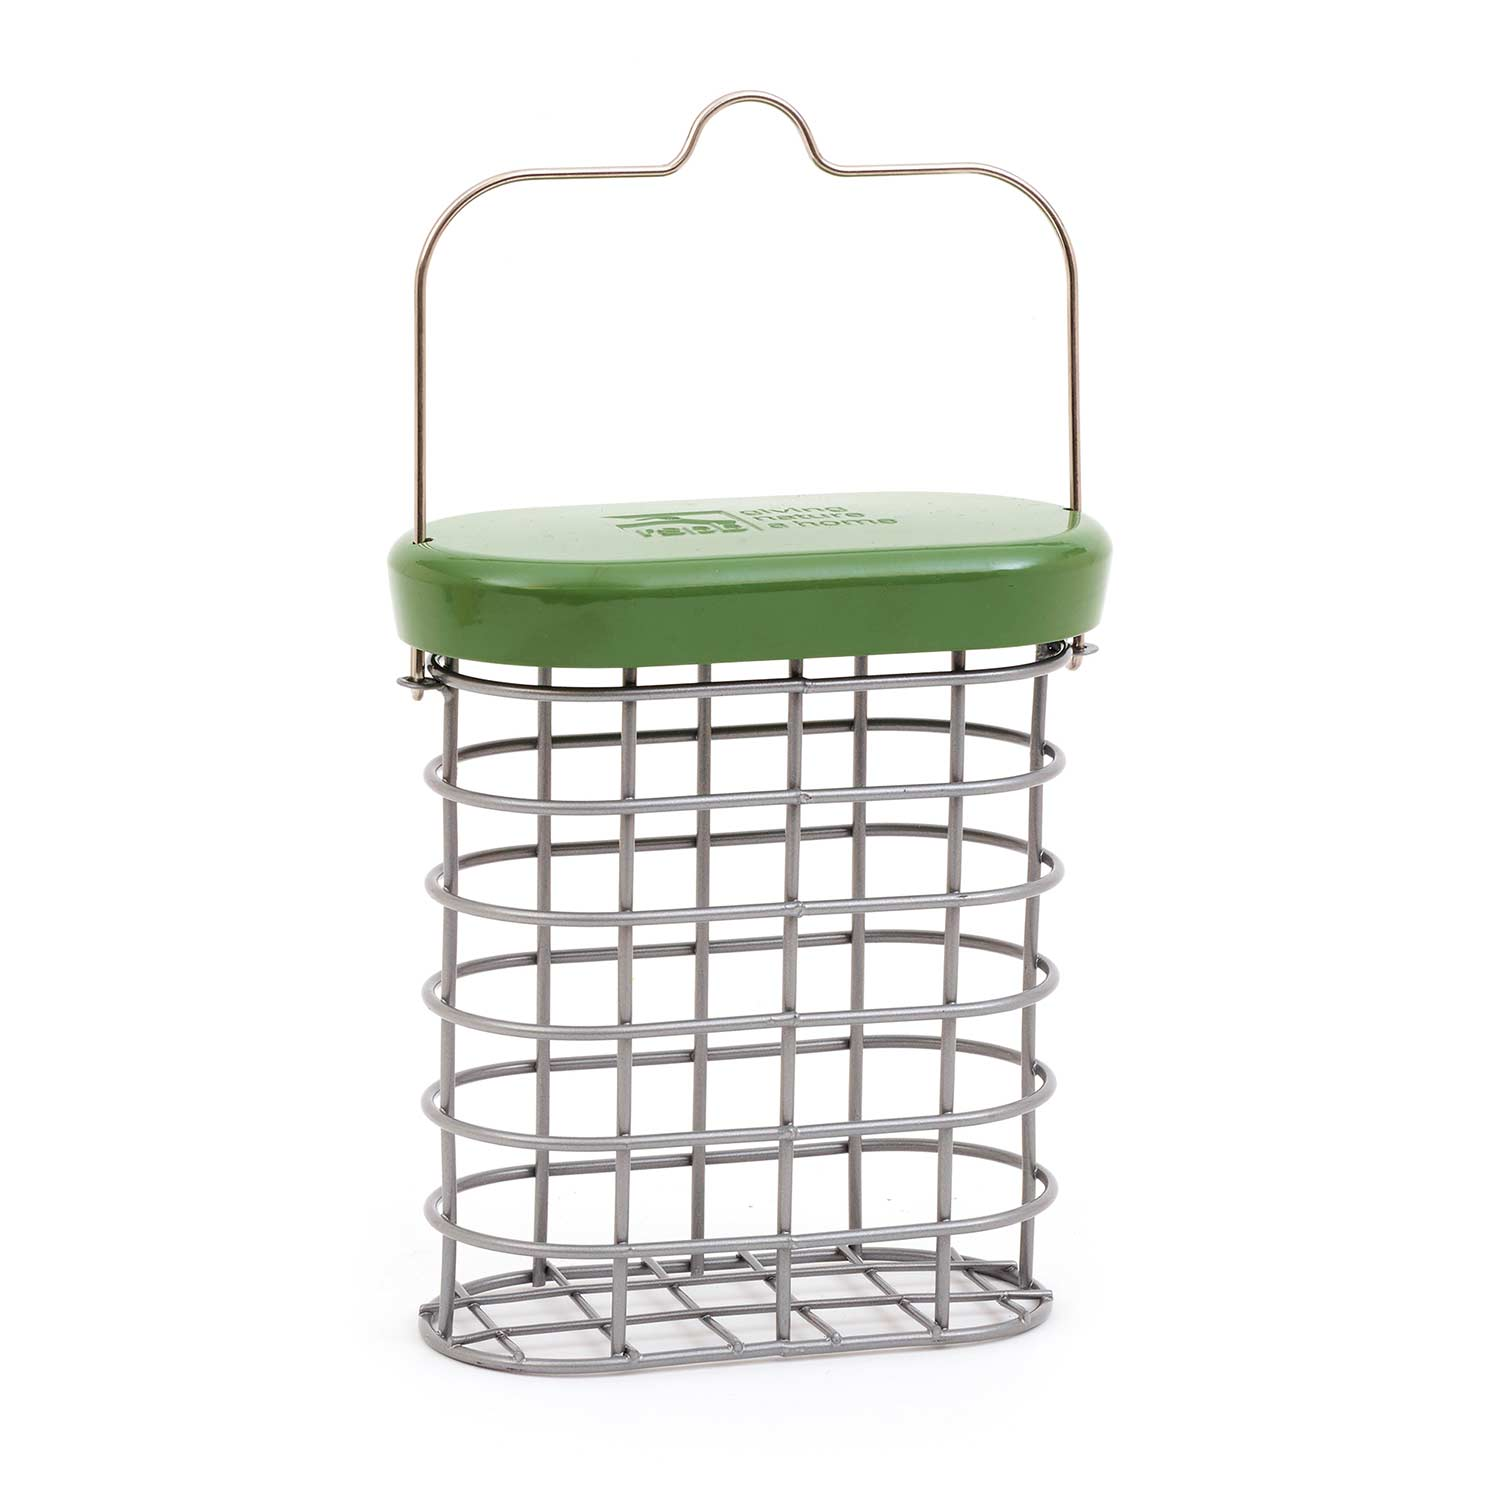 RSPB Ultimate suet feeder + Super suet cakes x3 offer product photo Side View -  - additional image 3 T